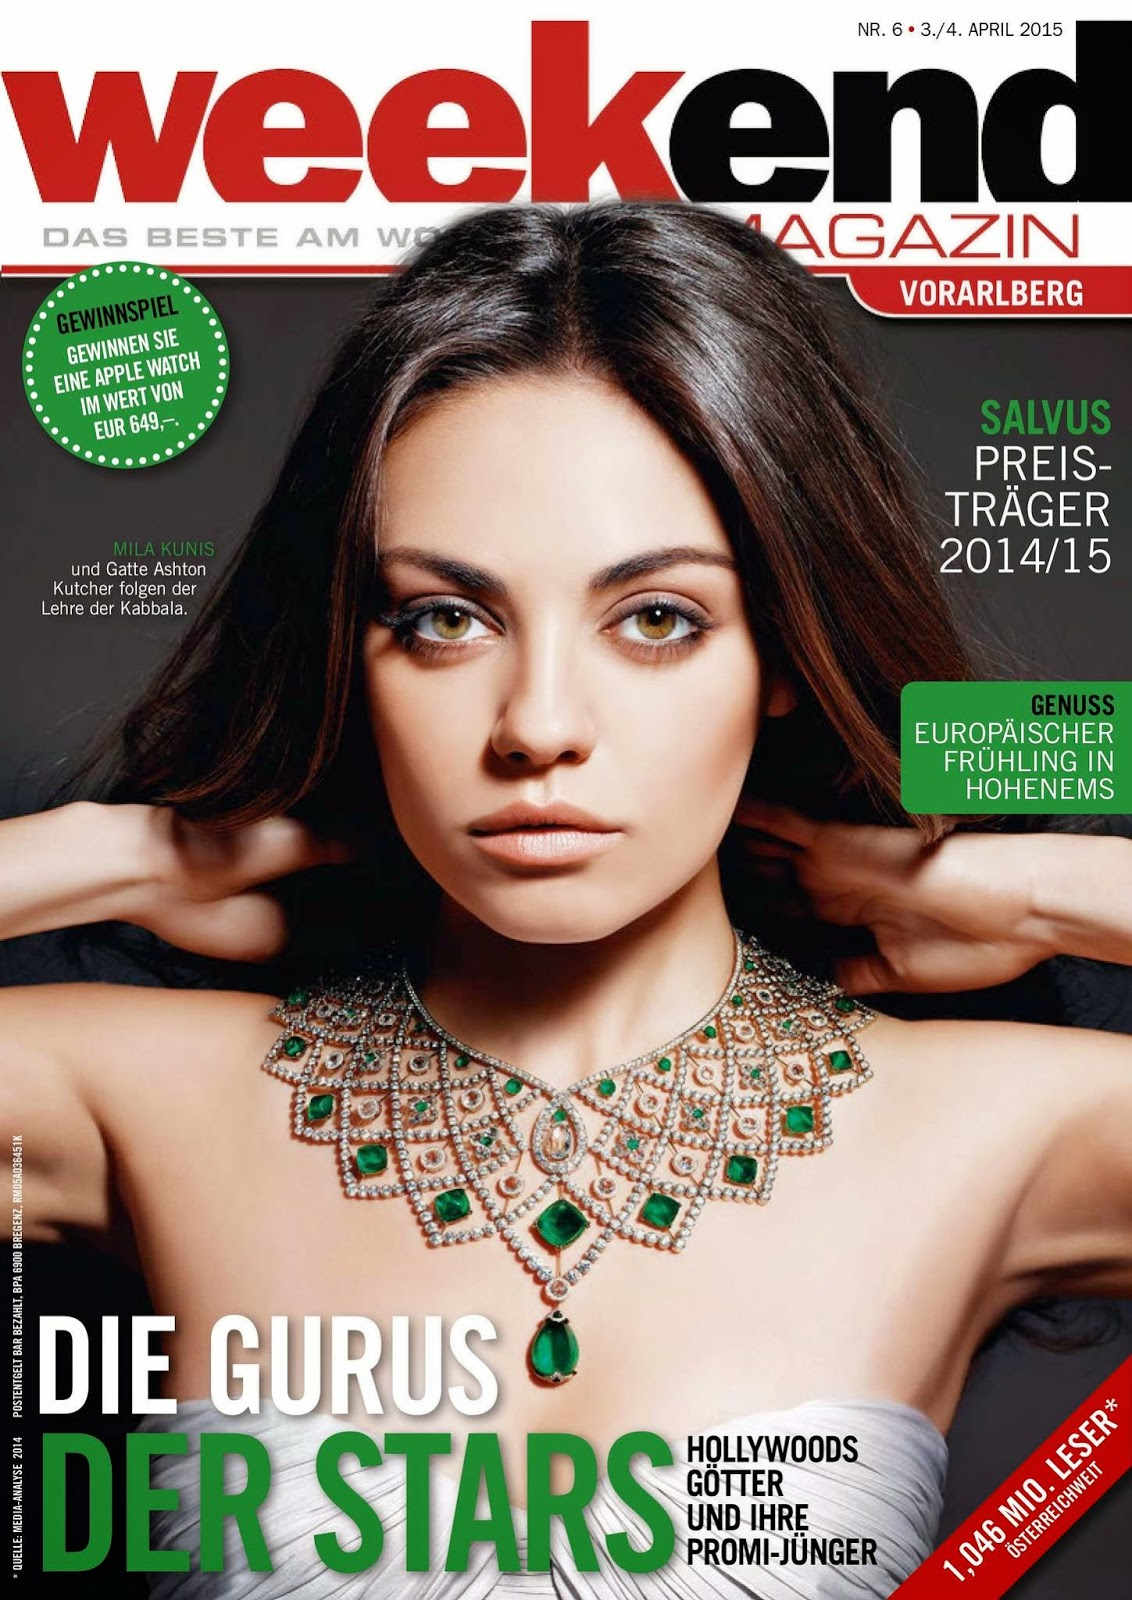 Actress @ Mila Kunis - Weekend Magazin, April 2015